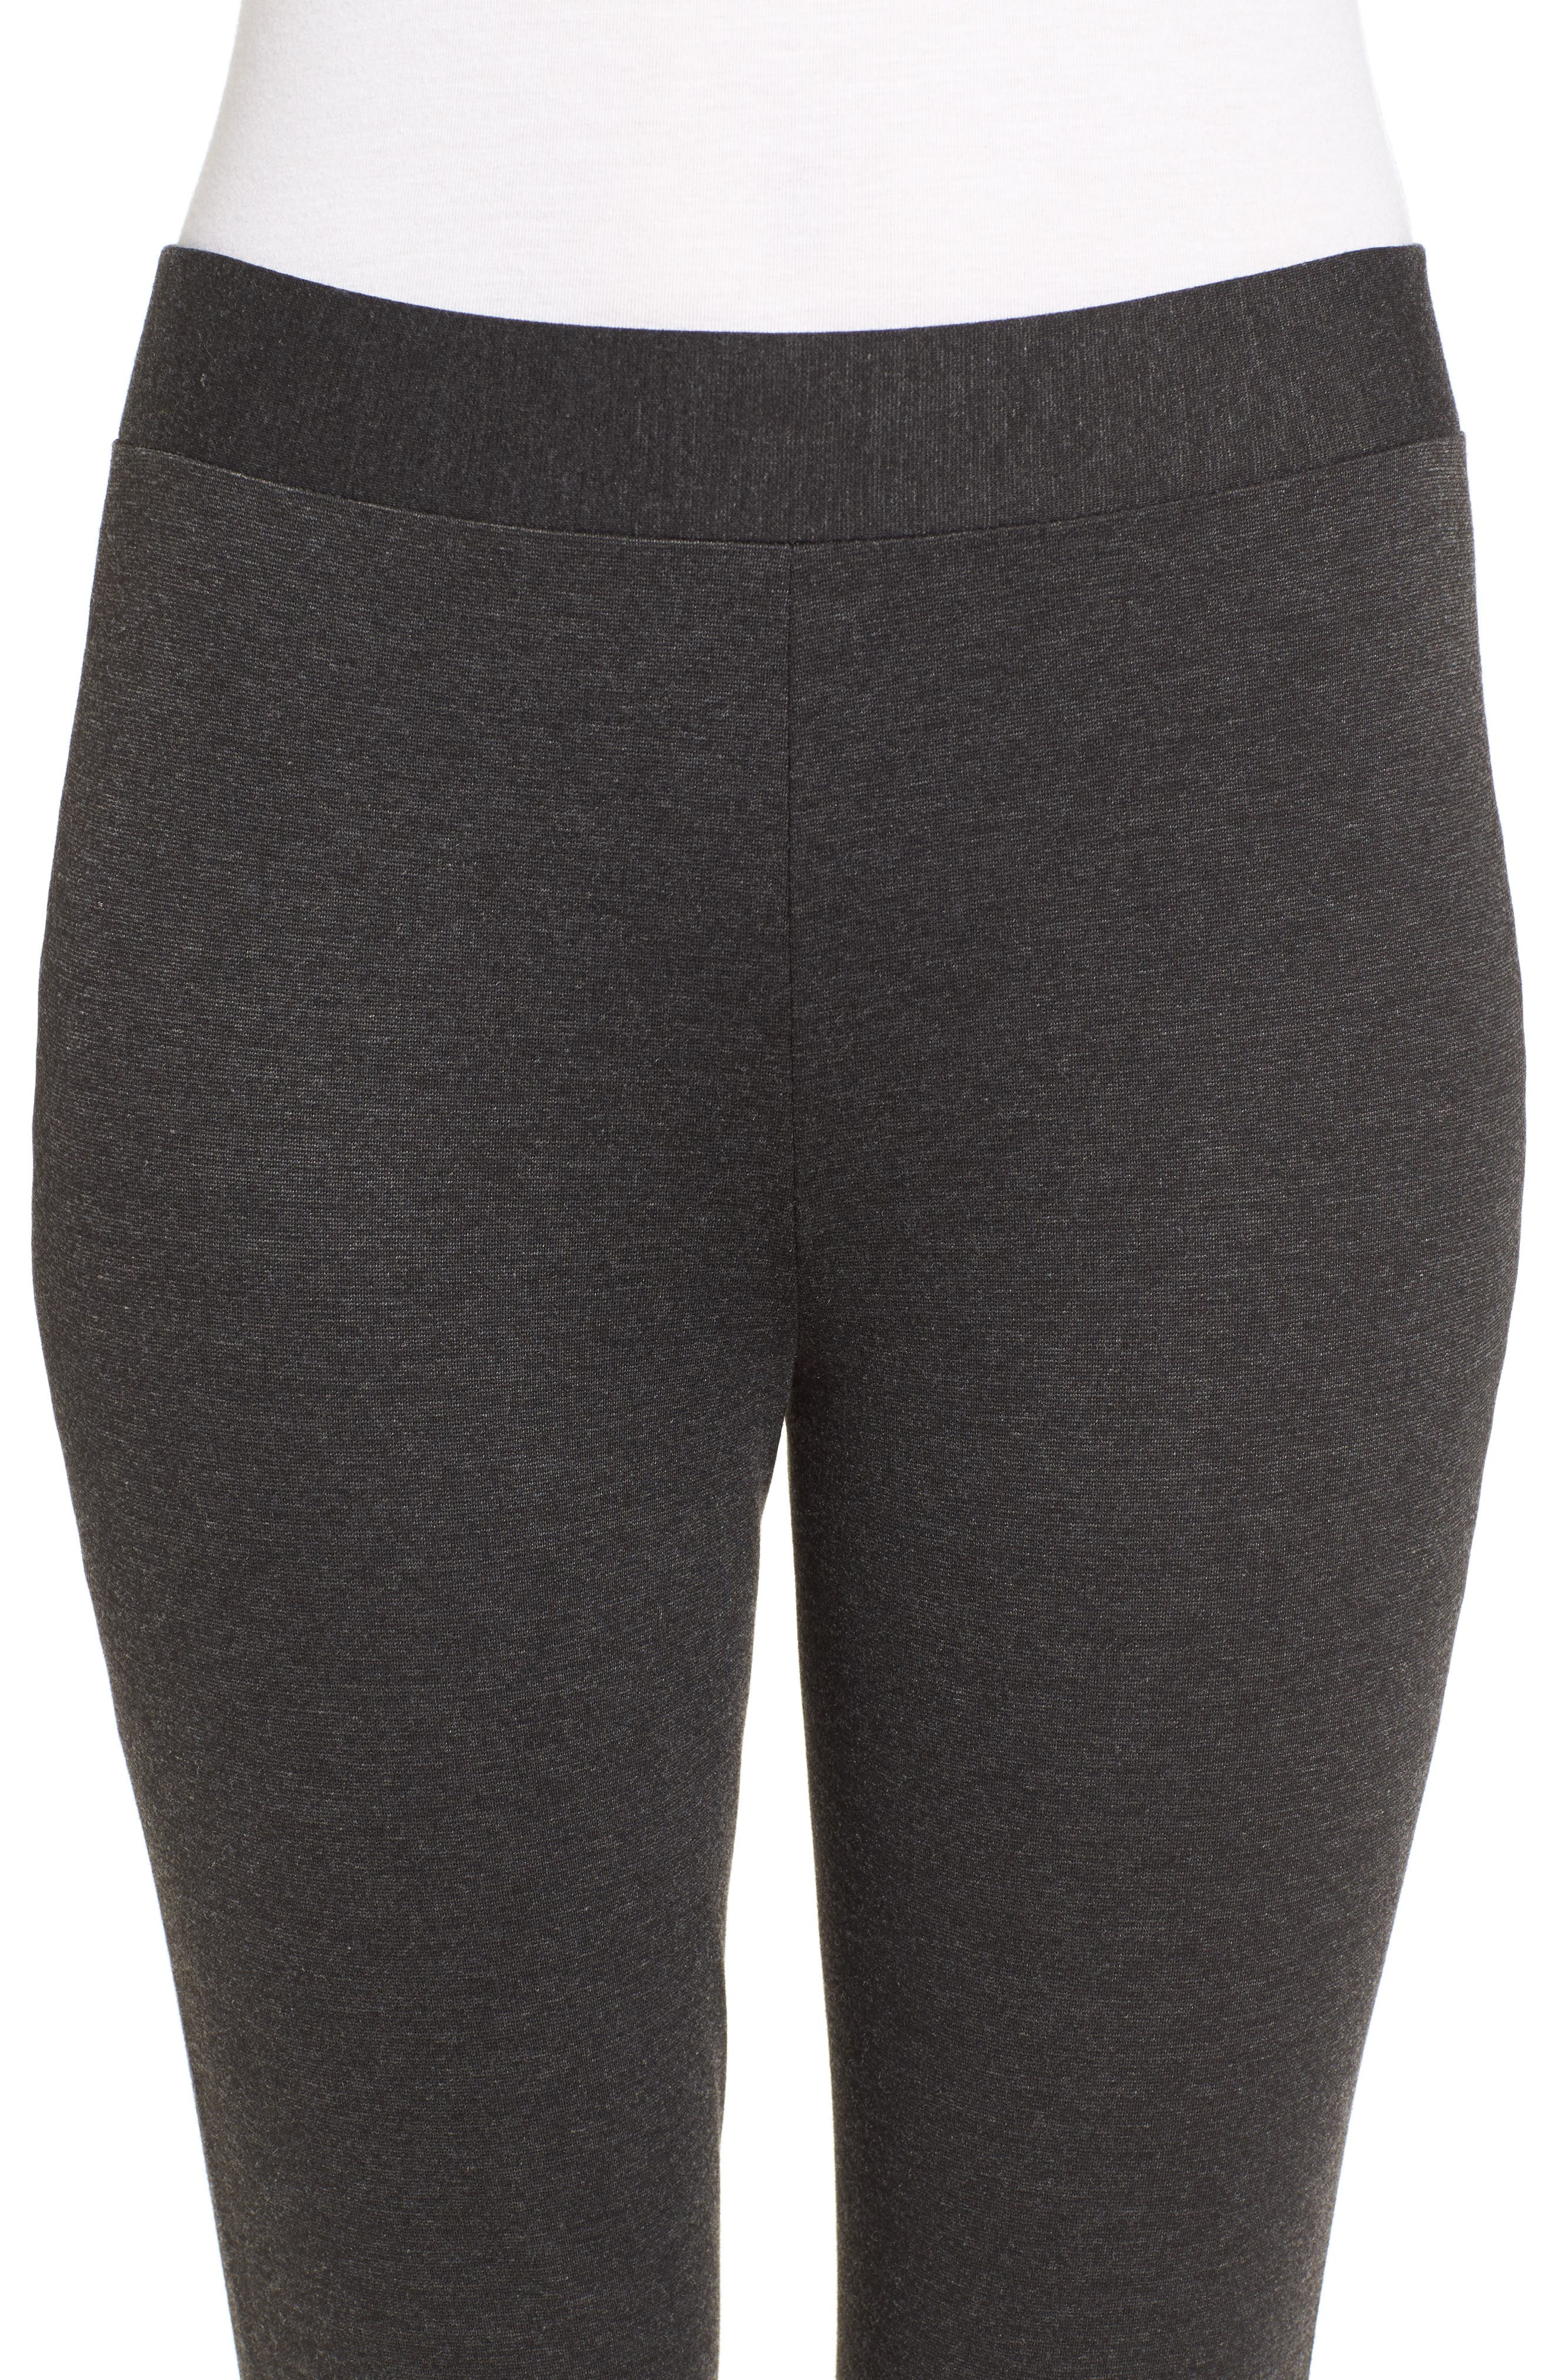 VINCE CAMUTO, Two by Vince Camuto Seamed Back Leggings, Alternate thumbnail 5, color, DARK HEATHER GREY